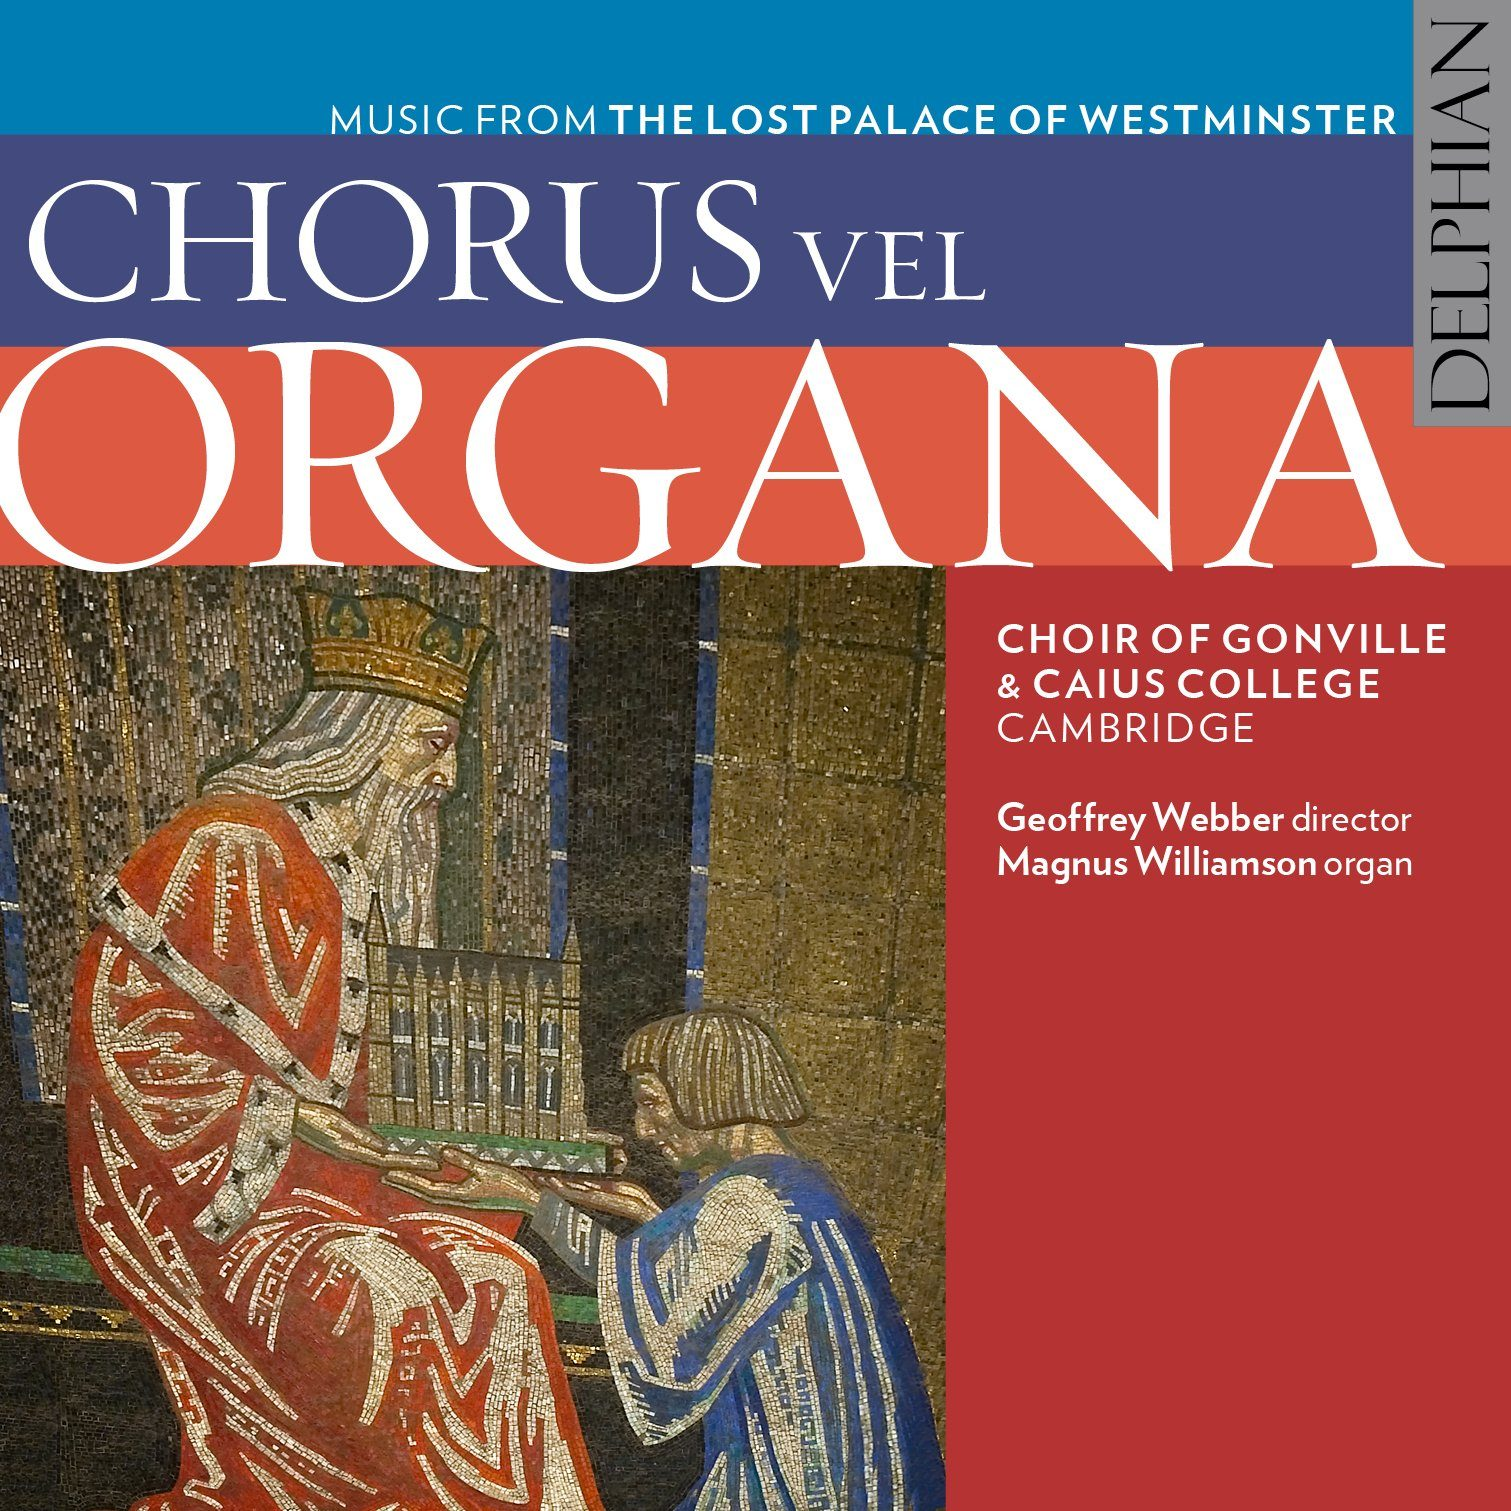 Chorus vel Organa: Music from the lost Palace of Westminster CD Delphian Records